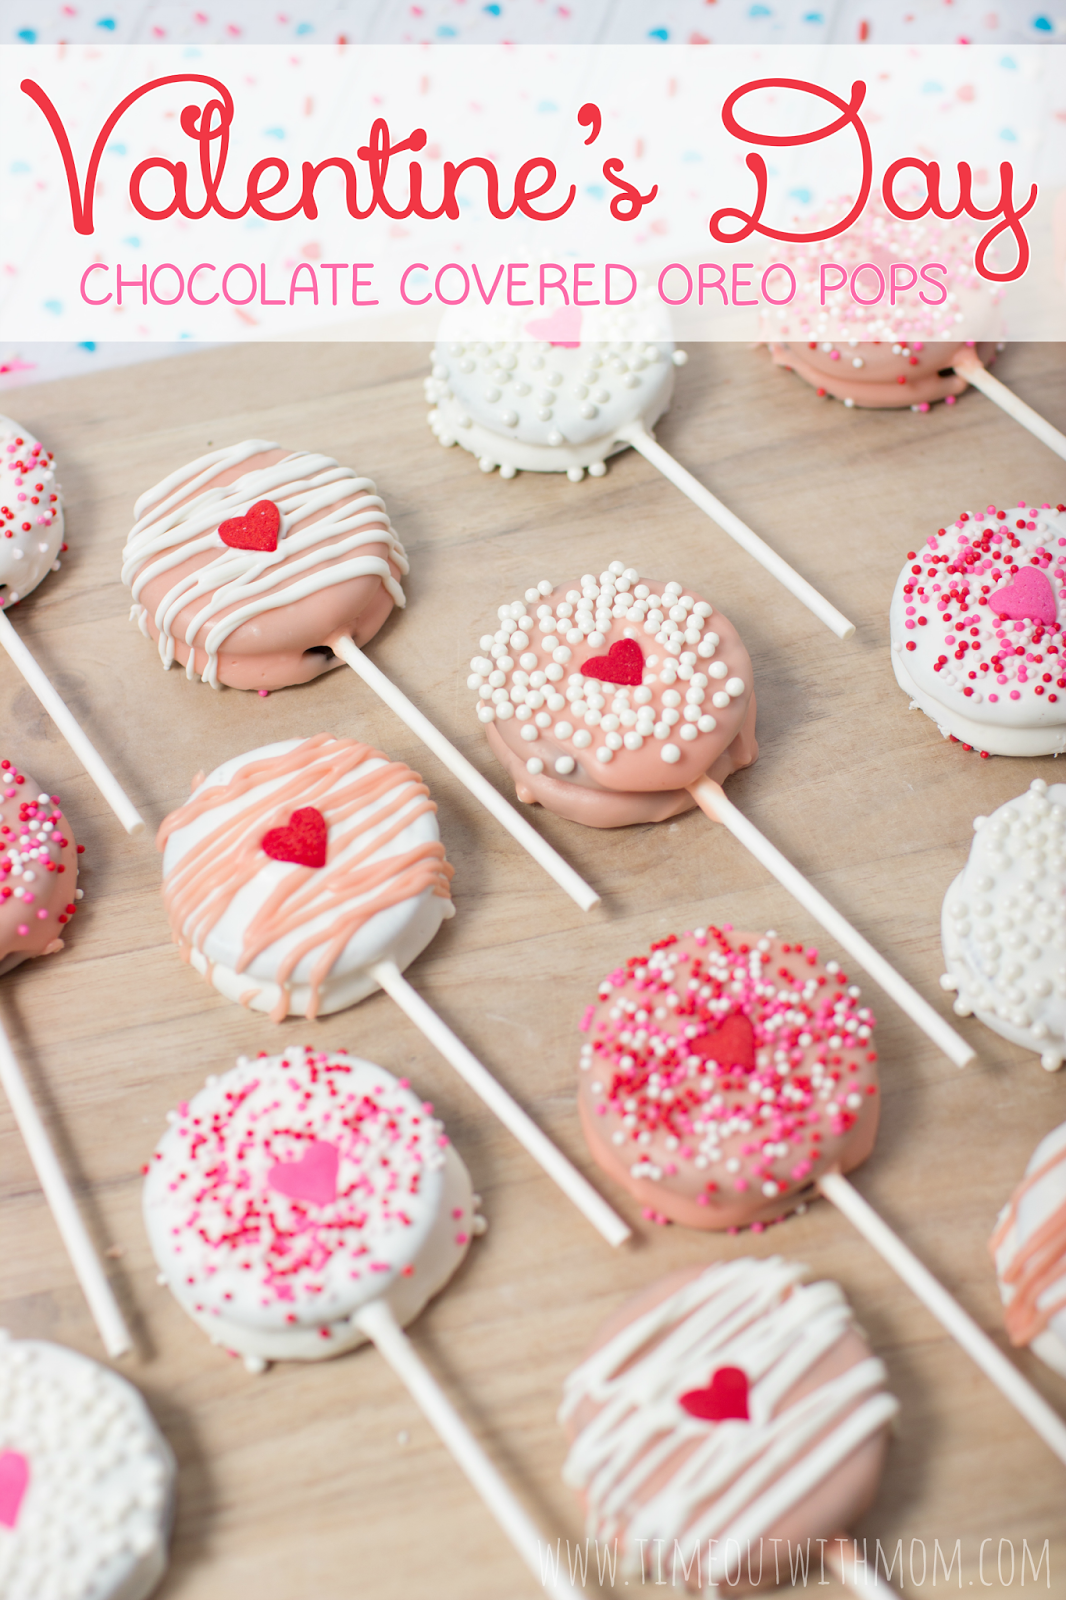 Make These Easy Valentine S Day Chocolate Covered Oreo Pops For Your